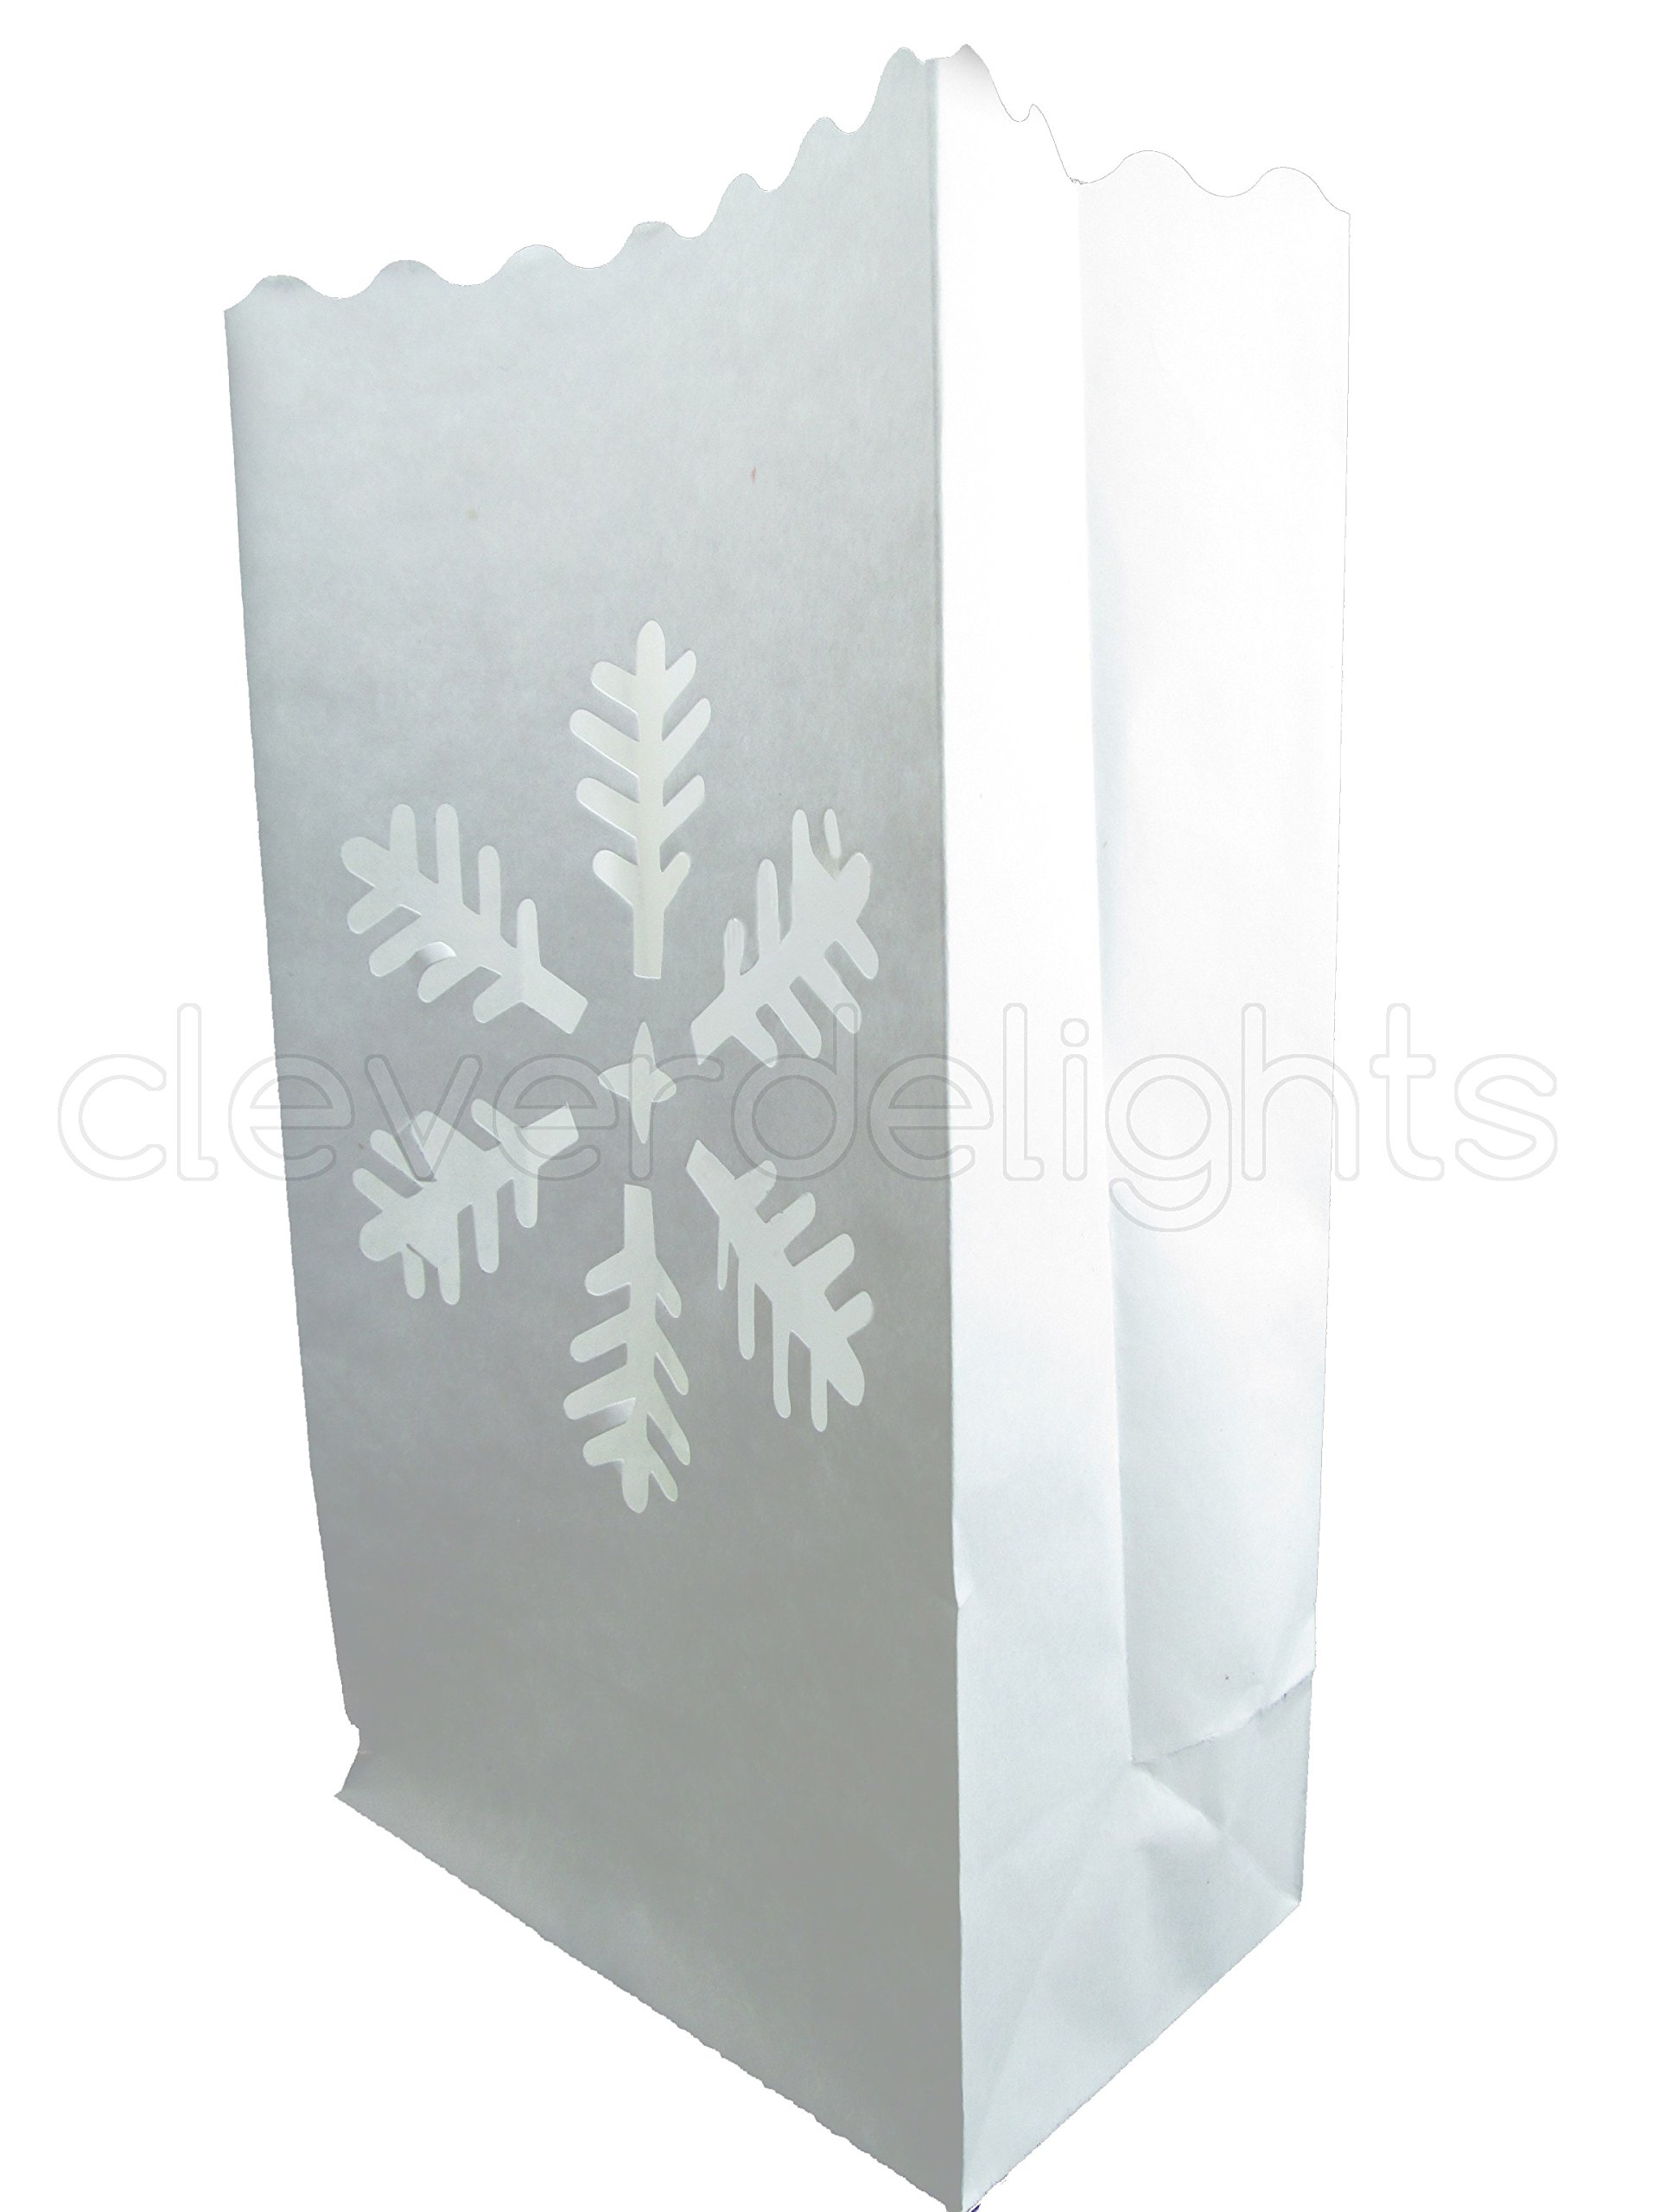 CleverDelights White Luminary Bags - 20 Count - Snowflake Design - Flame Resistant Paper - Christmas Holiday Outdoor Decorations - Party and Event Decor - Luminaria Candle Bag - Twenty Bags by CleverDelights